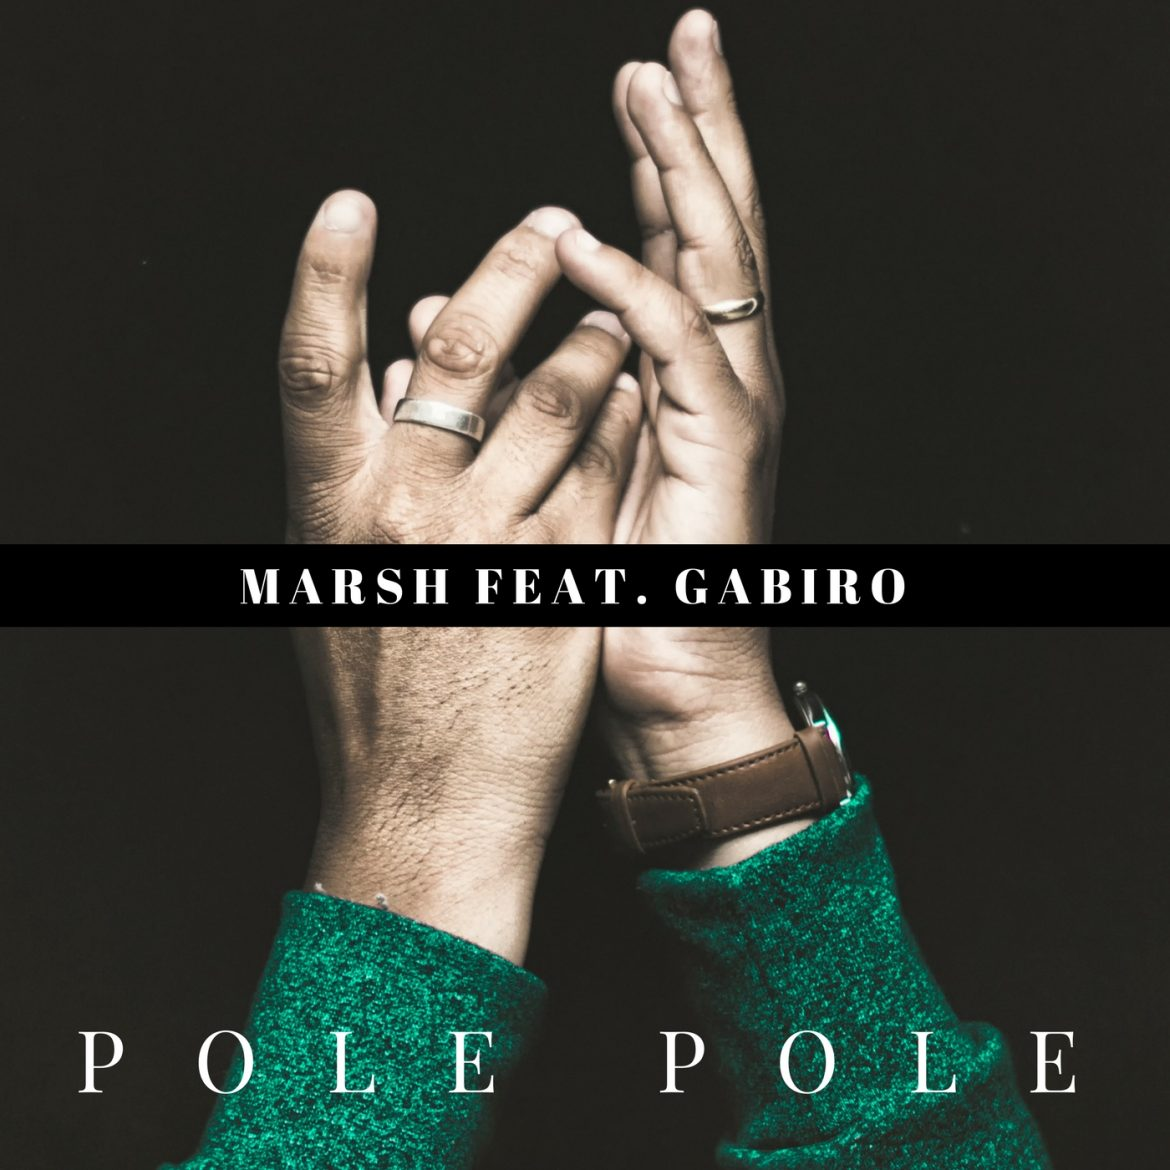 POLE POLE - MARSH FEAT. GABIRO